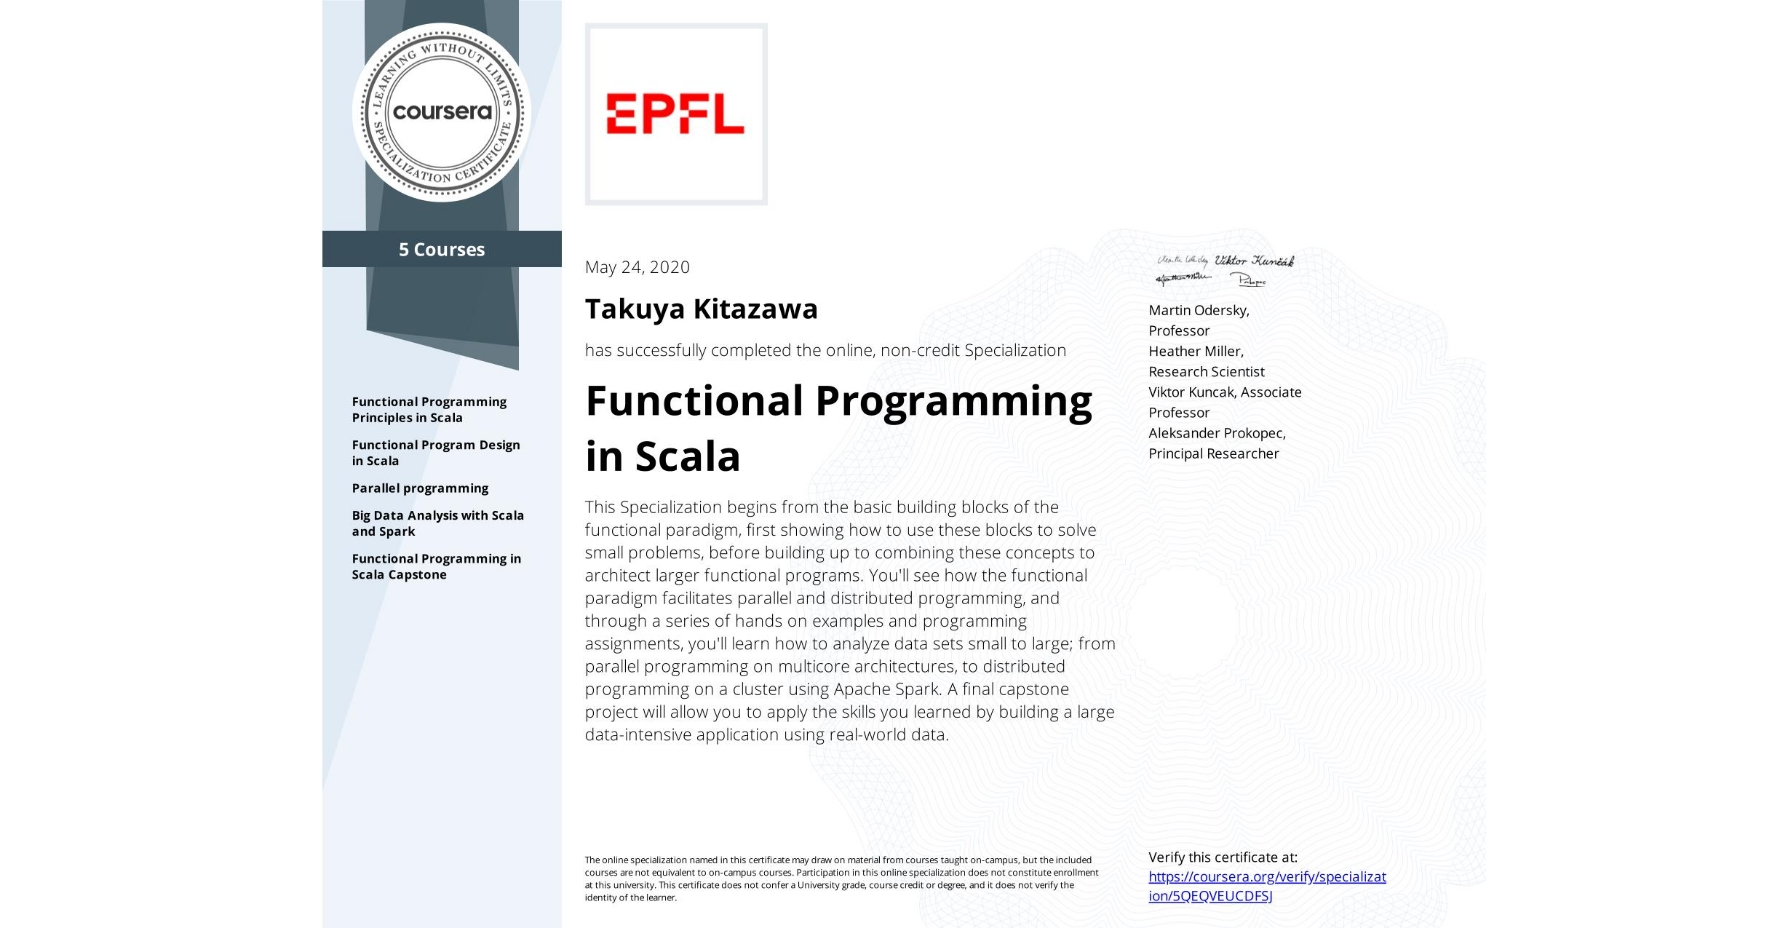 View certificate for Takuya Kitazawa, Functional Programming in Scala, offered through Coursera. This Specialization begins from the basic building blocks of the functional paradigm, first showing how to use these blocks to solve small problems, before building up to combining these concepts to architect larger functional programs. You'll see how the functional paradigm facilitates parallel and distributed programming, and through a series of hands on examples and programming assignments, you'll learn how to analyze data sets small to large; from parallel programming on multicore architectures, to distributed programming on a cluster using Apache Spark. A final capstone project will allow you to apply the skills you learned by building a large data-intensive application using real-world data.